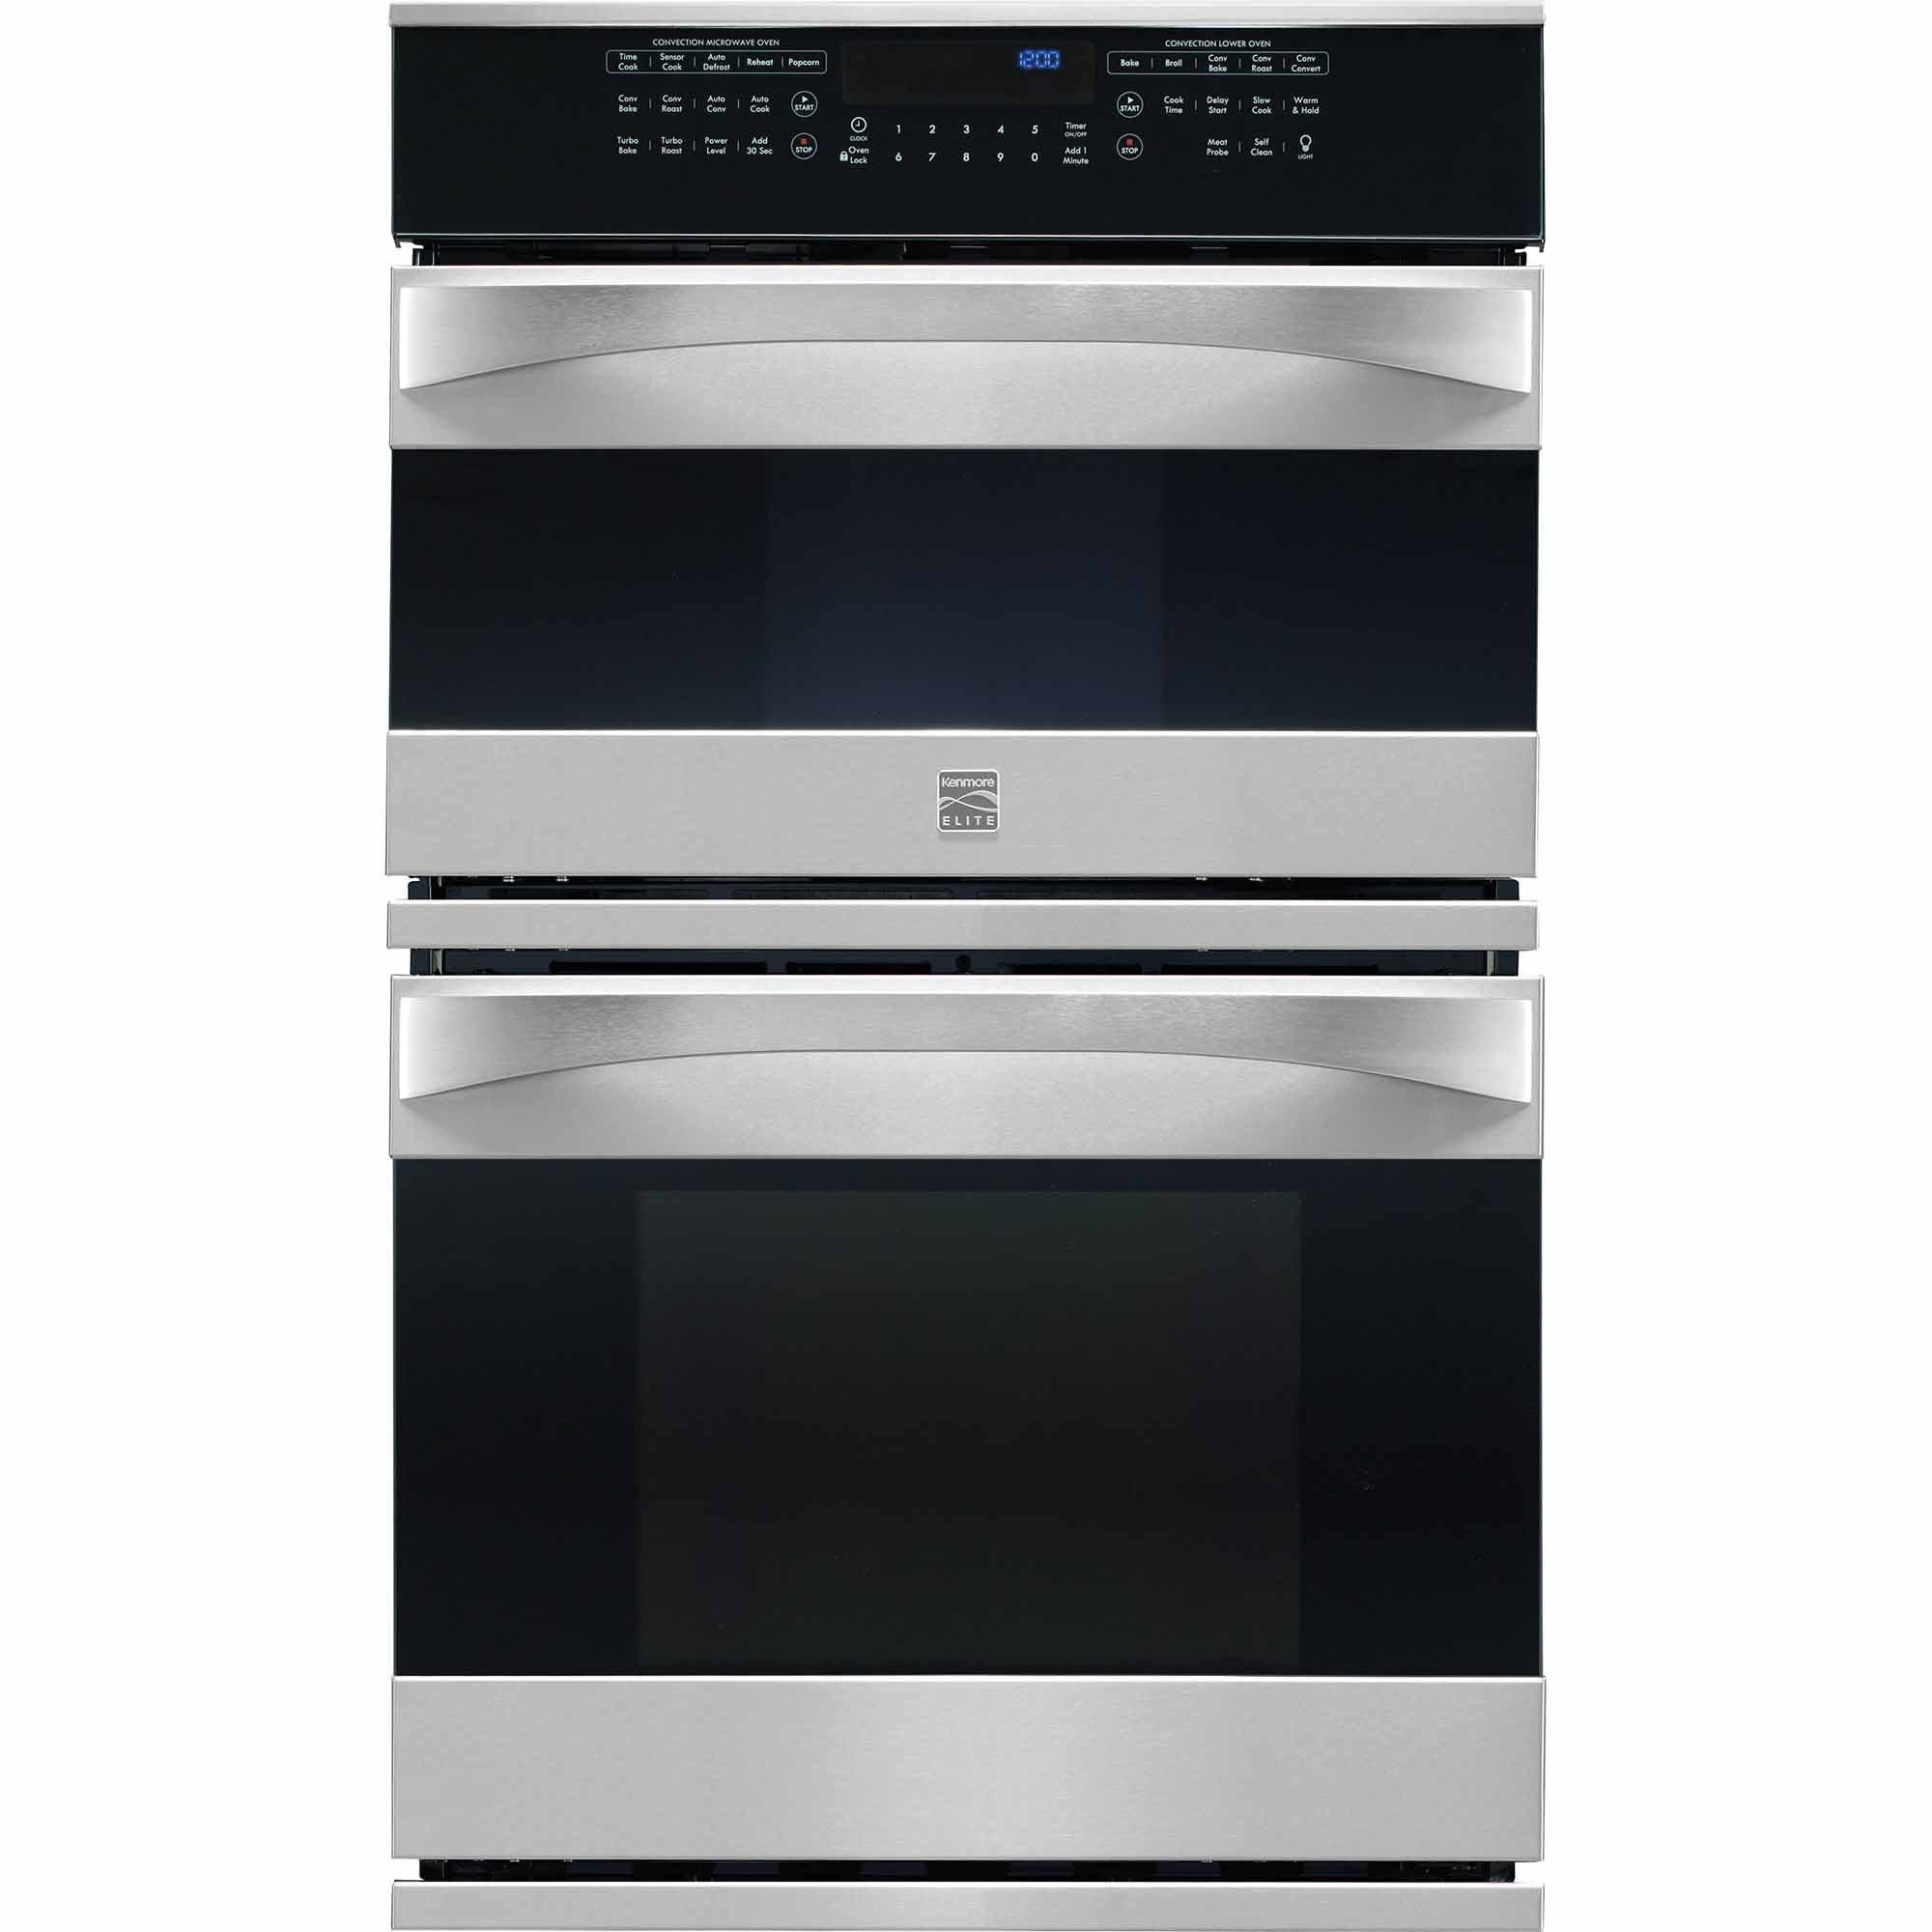 Kenmore Elite 48913 27 Electric Combination Oven - Stainless Steel